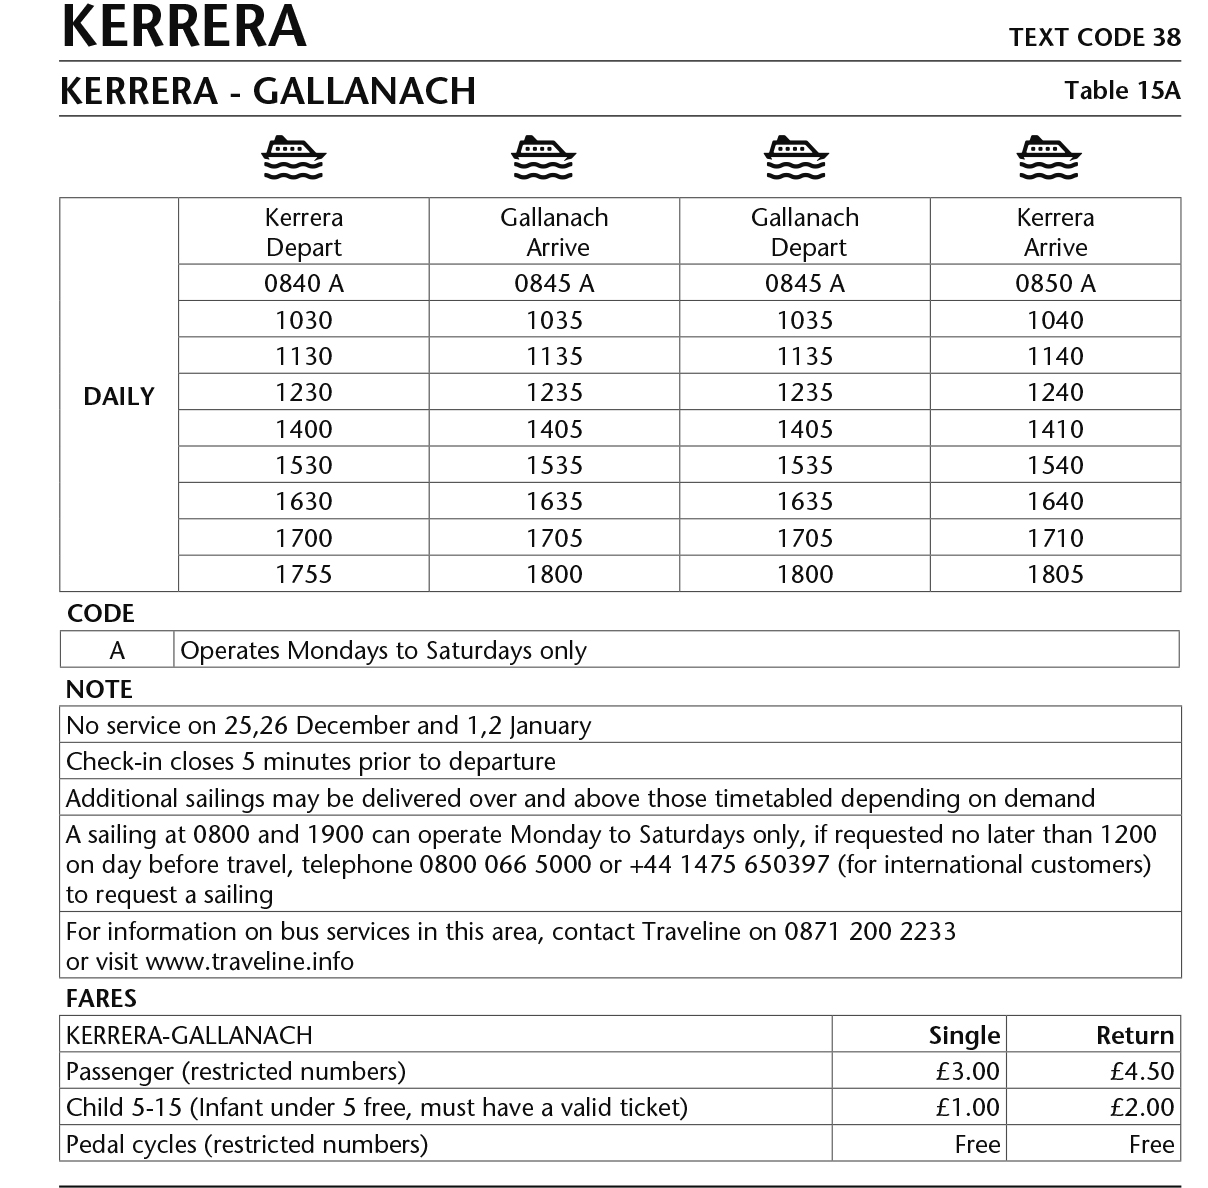 Table 15a Kerrera: Gallanach - Kerrera ferry Winter timetable 2017-18 - This image is currently not accessible to screen readers. Please phone 0800 066 5000 for timetable details.